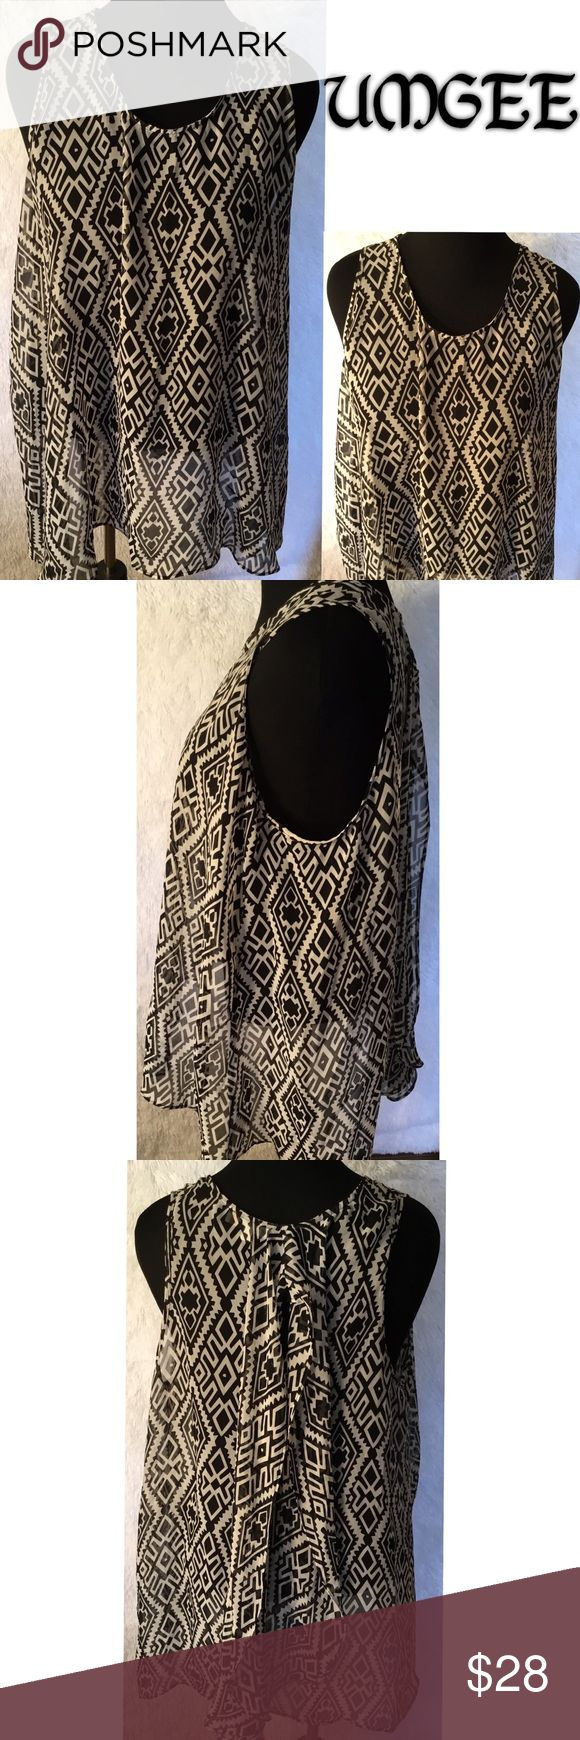 Aztec Sleeveless Top Black/White sleeveless top, semi sheer, NWOT , match with a black or white cami underneath ....C-1 Umgee Tops